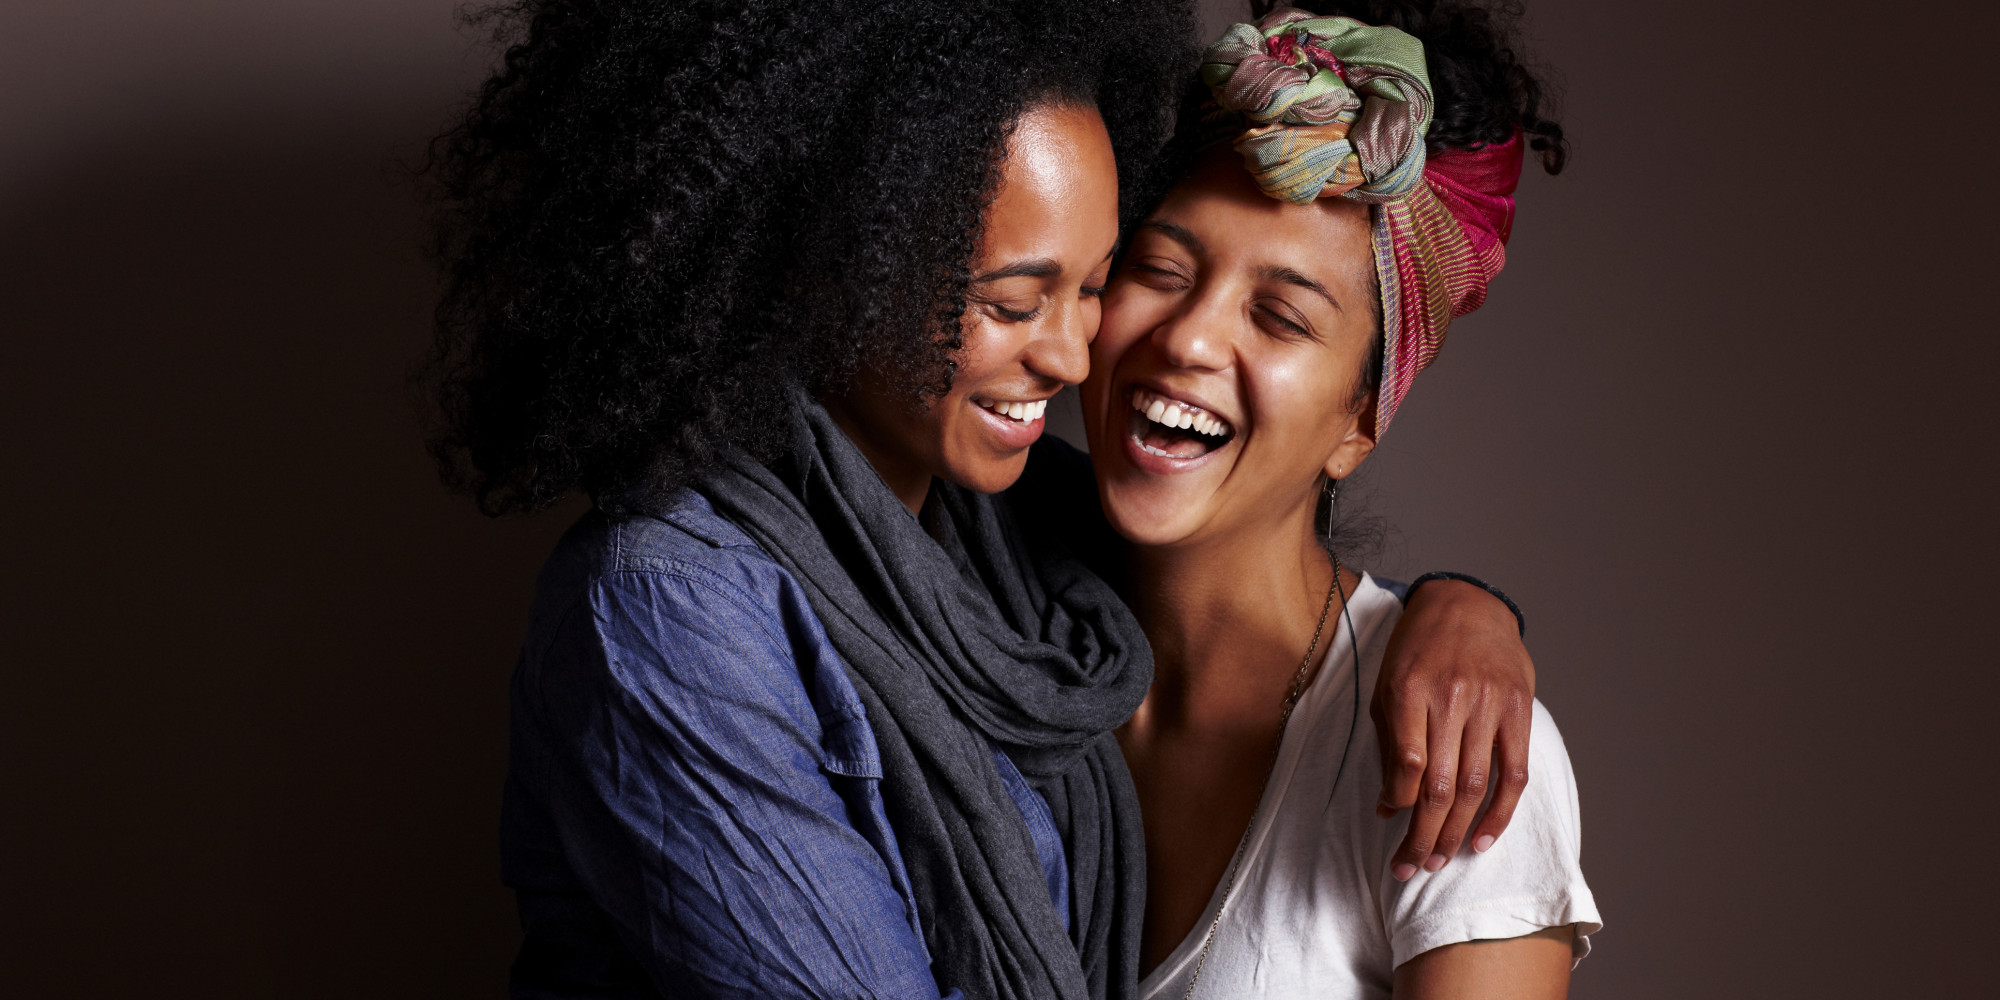 Image result for black sisters laughing together